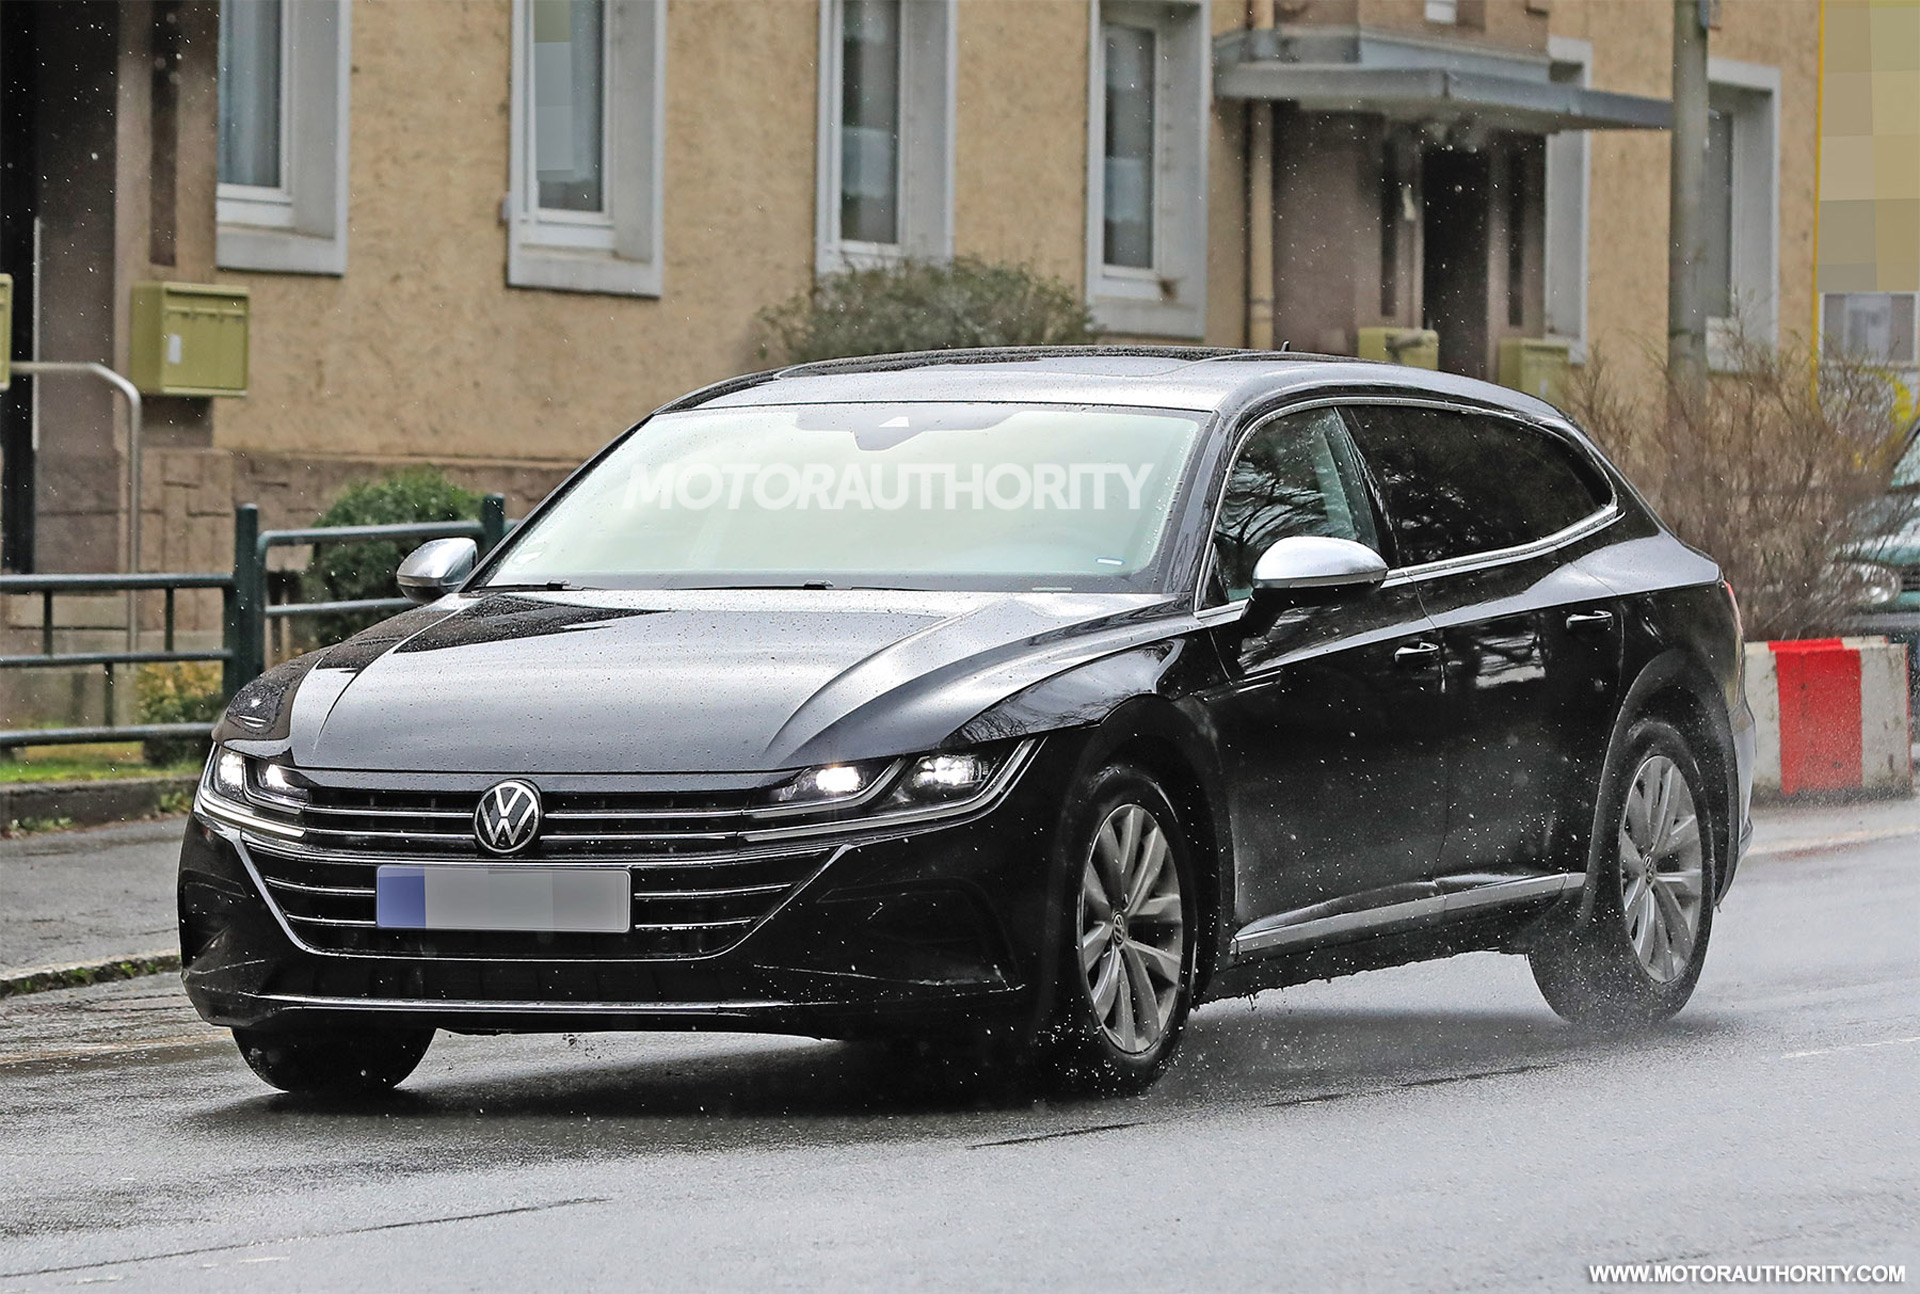 2021 volkswagen arteon shooting brake spy shots and video